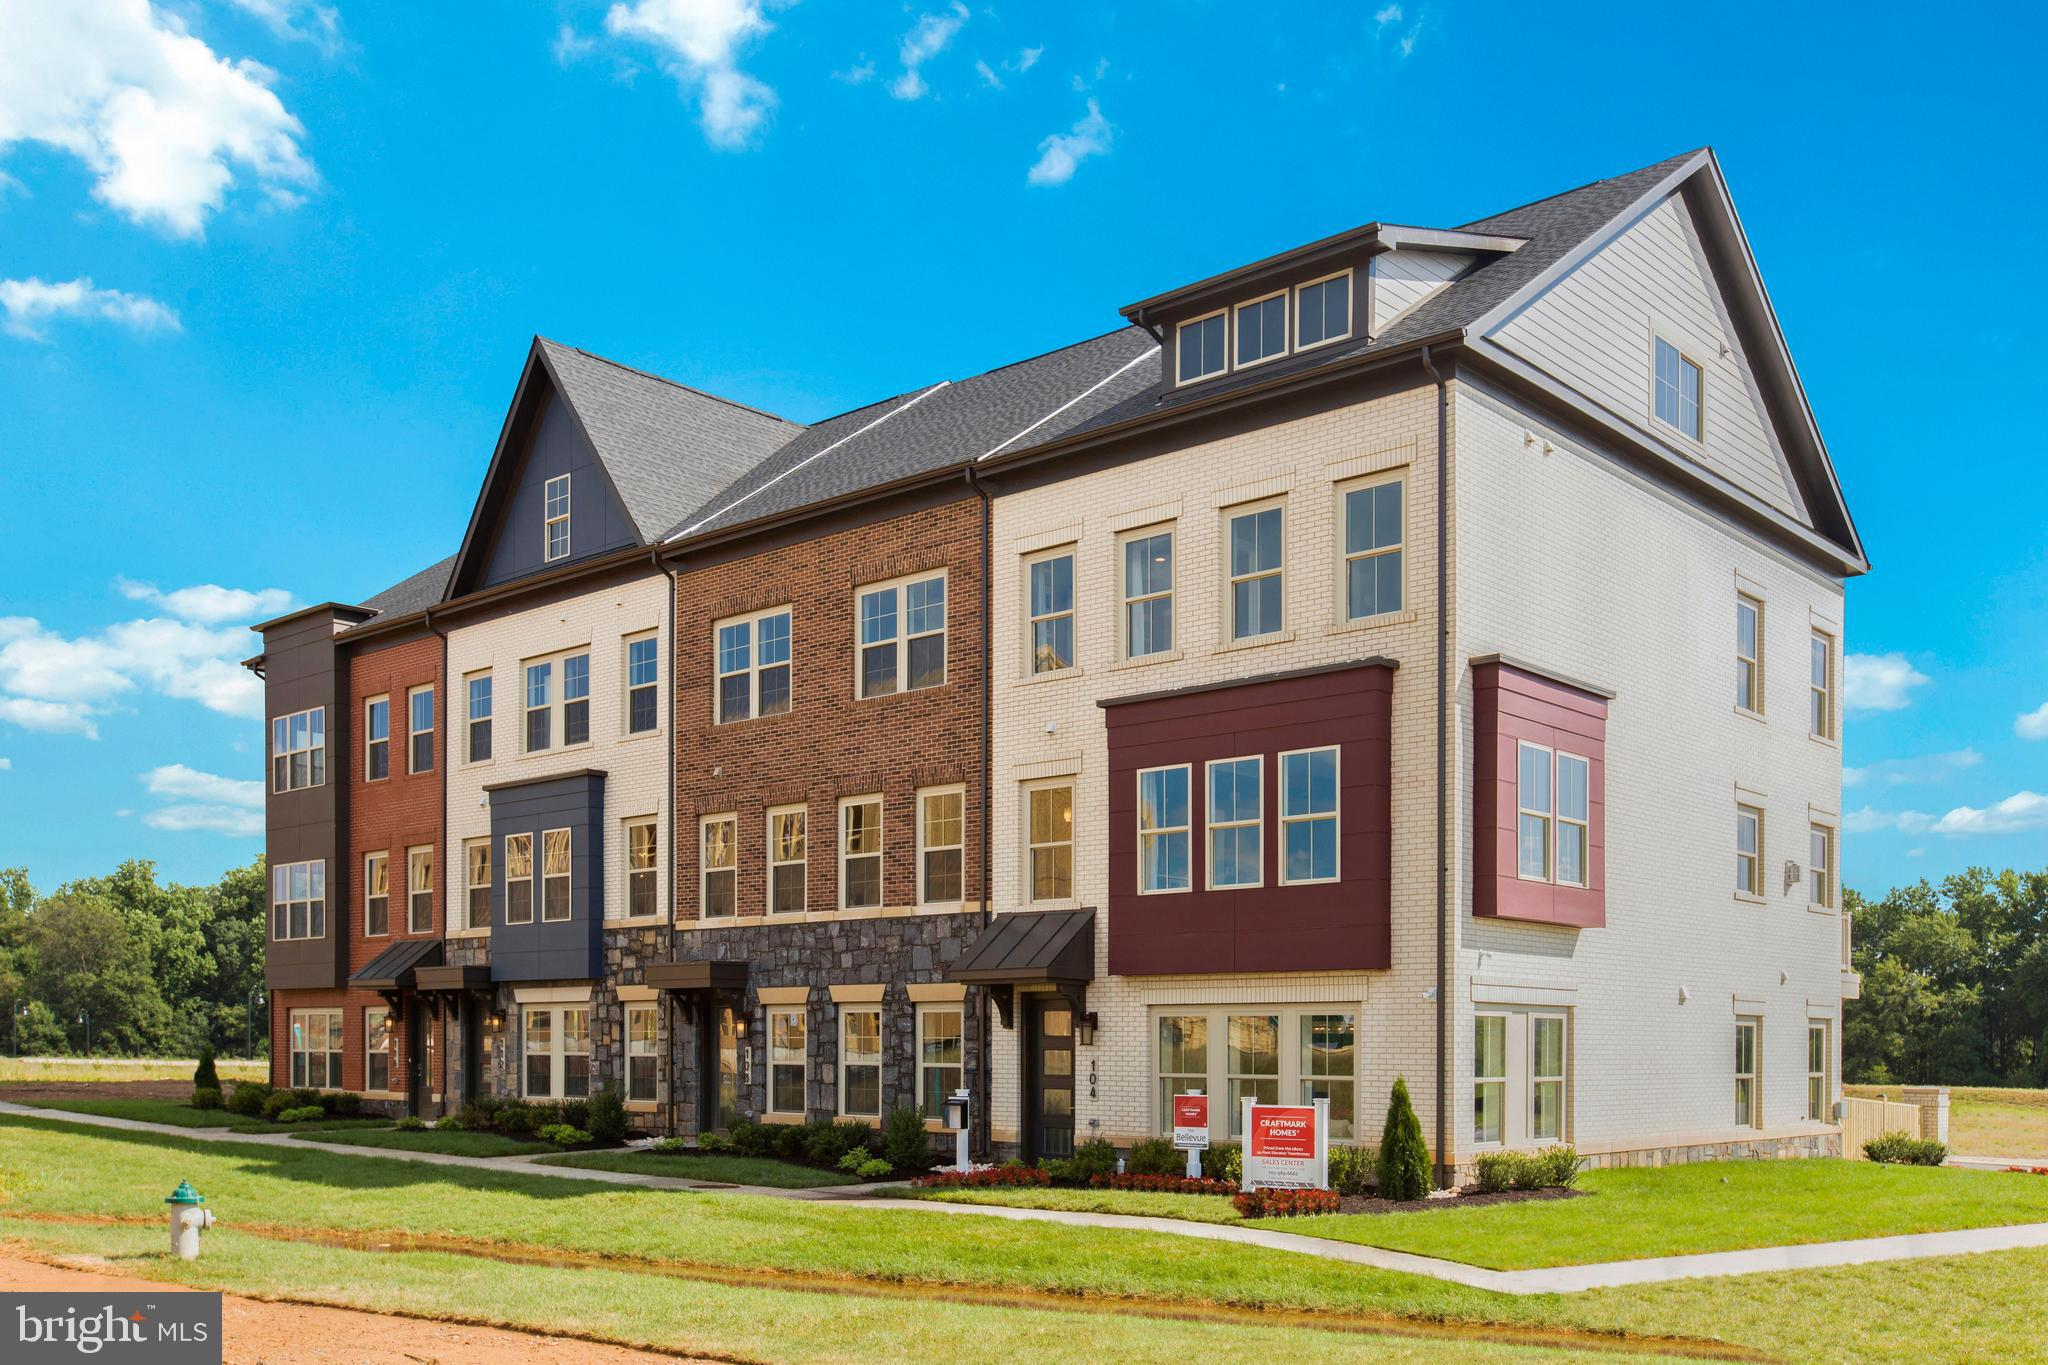 NEW CONSTRUCTION. CRAFTMARK HOMES @ CROWN. LUXURY 4 LEVEL END HOME, 2 CAR GARAGE TOWNHOME W/STANDARD